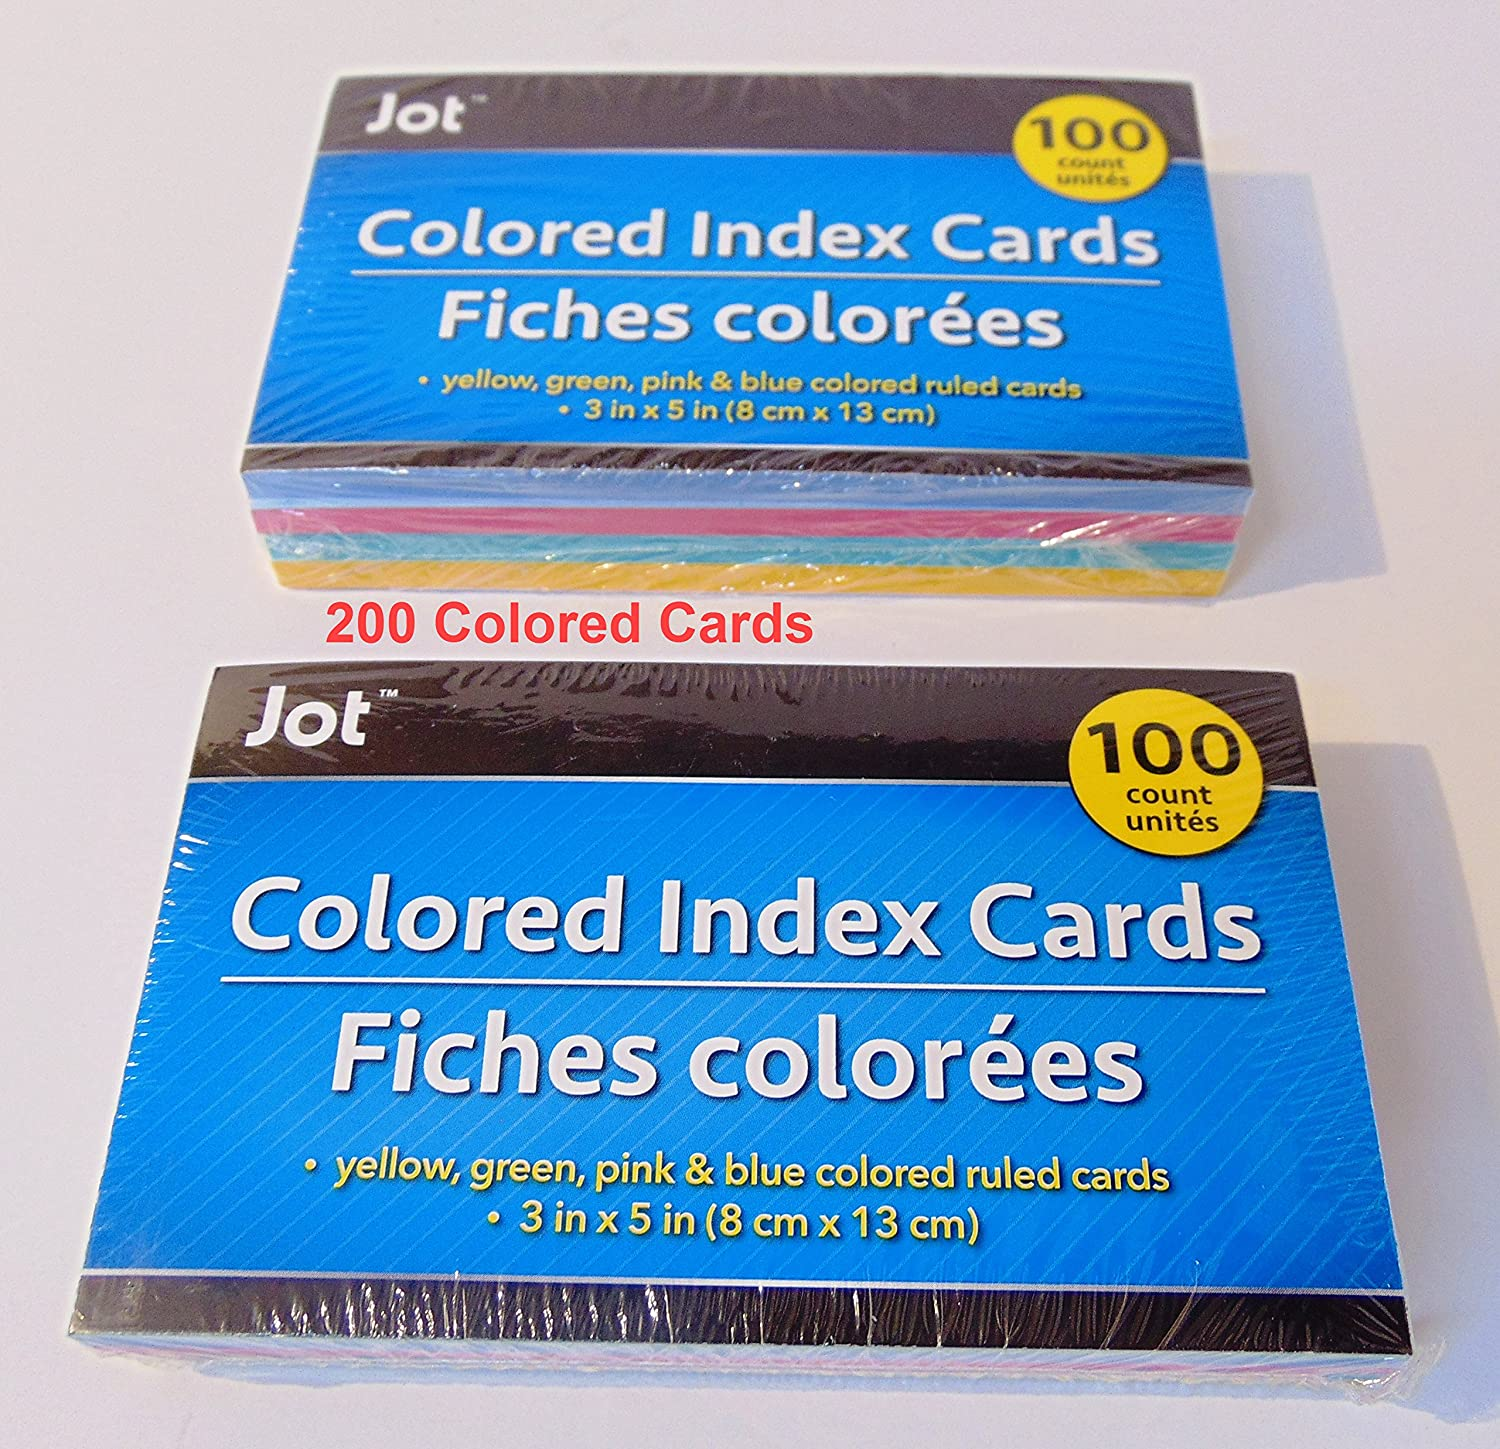 2 Colored Index Cards measuring 3 in 5 total San Francisco Mall inches 200 shopping x